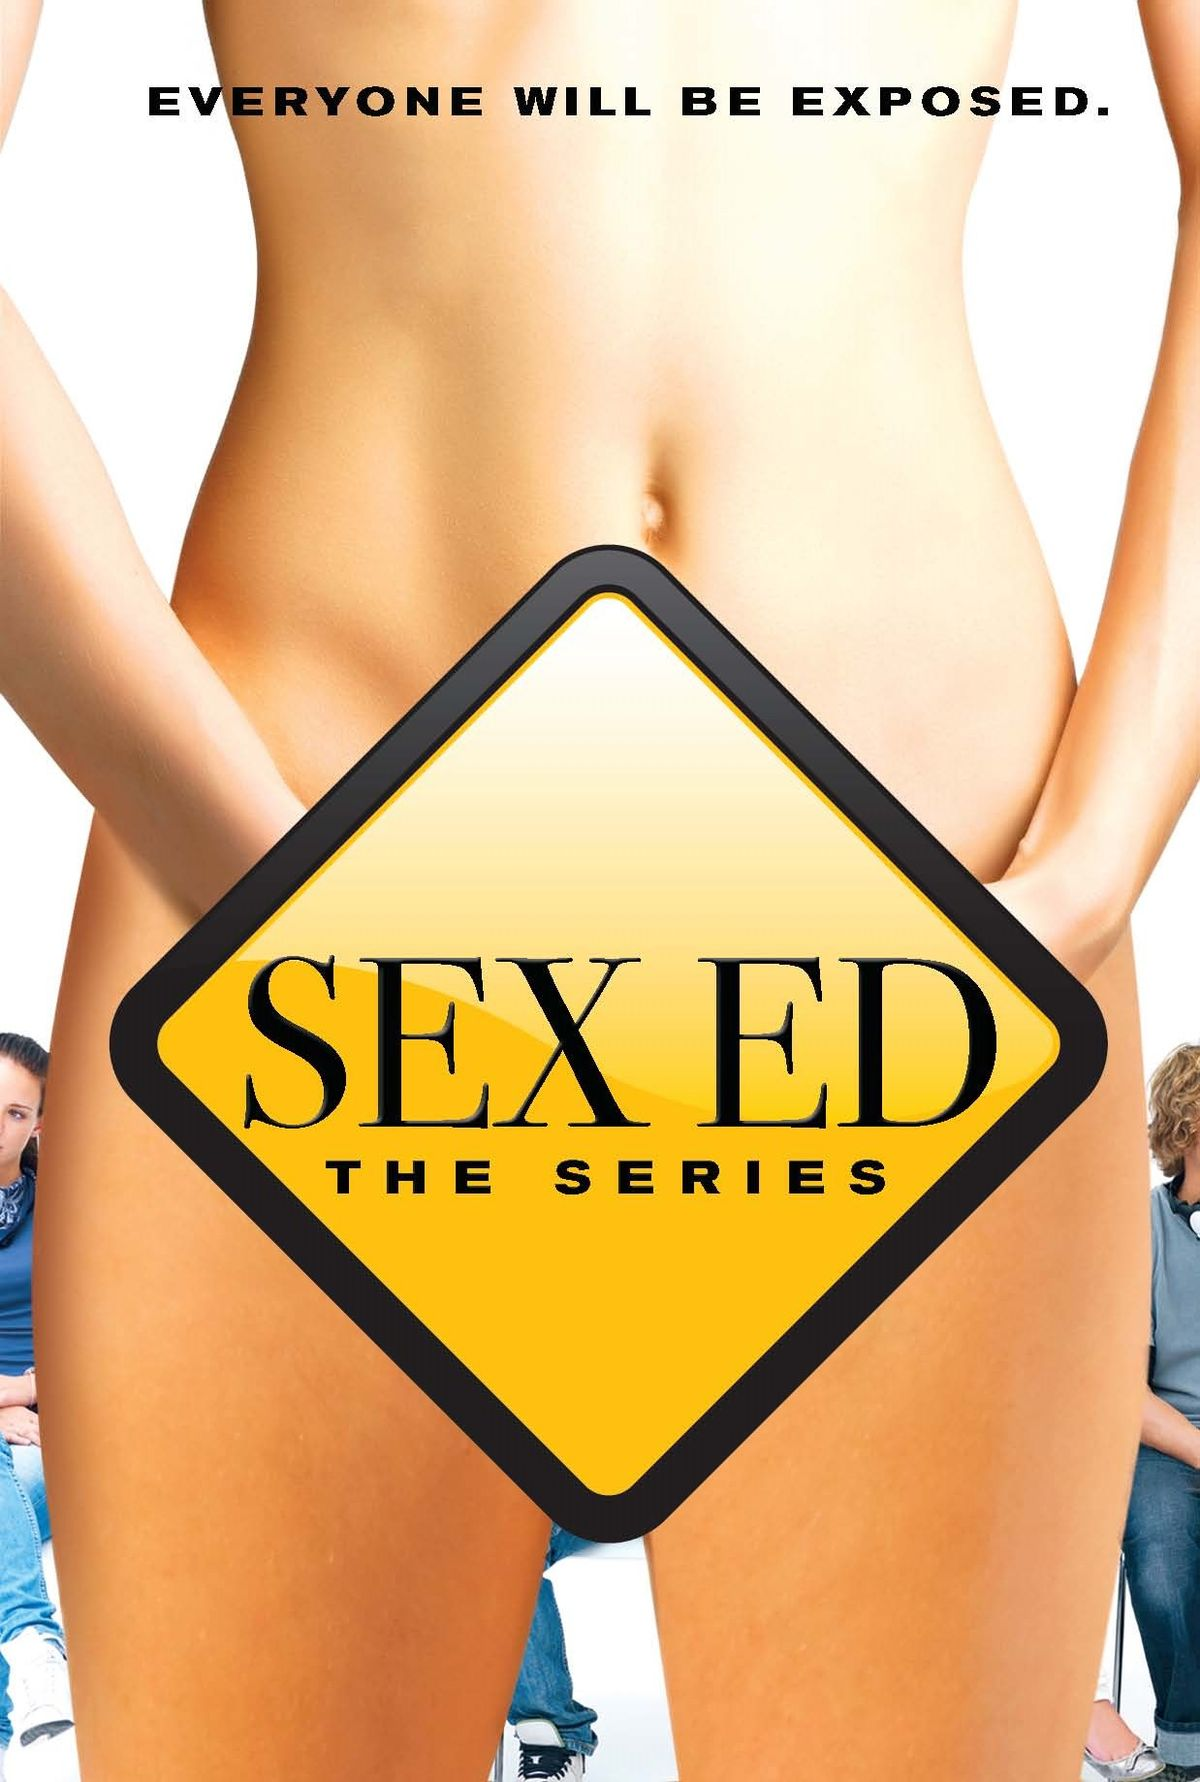 Sex ed film wiki